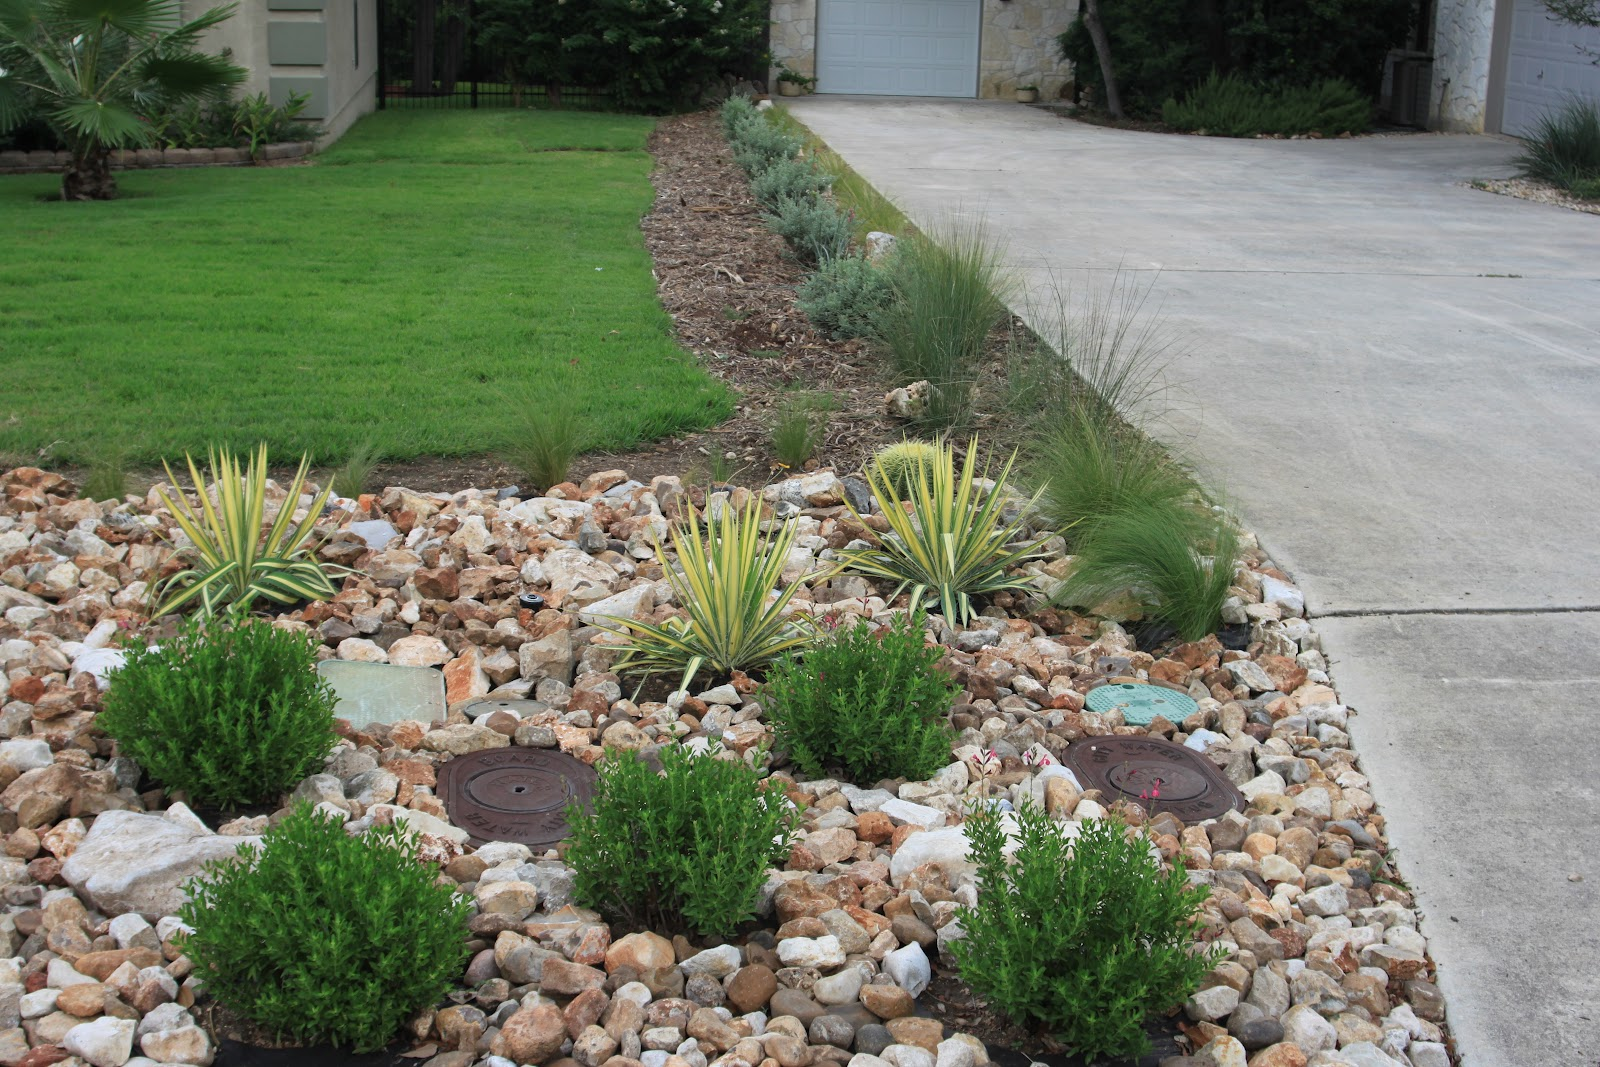 Willing landscape front lawn landscaping ideas using for Rock garden designs front yard